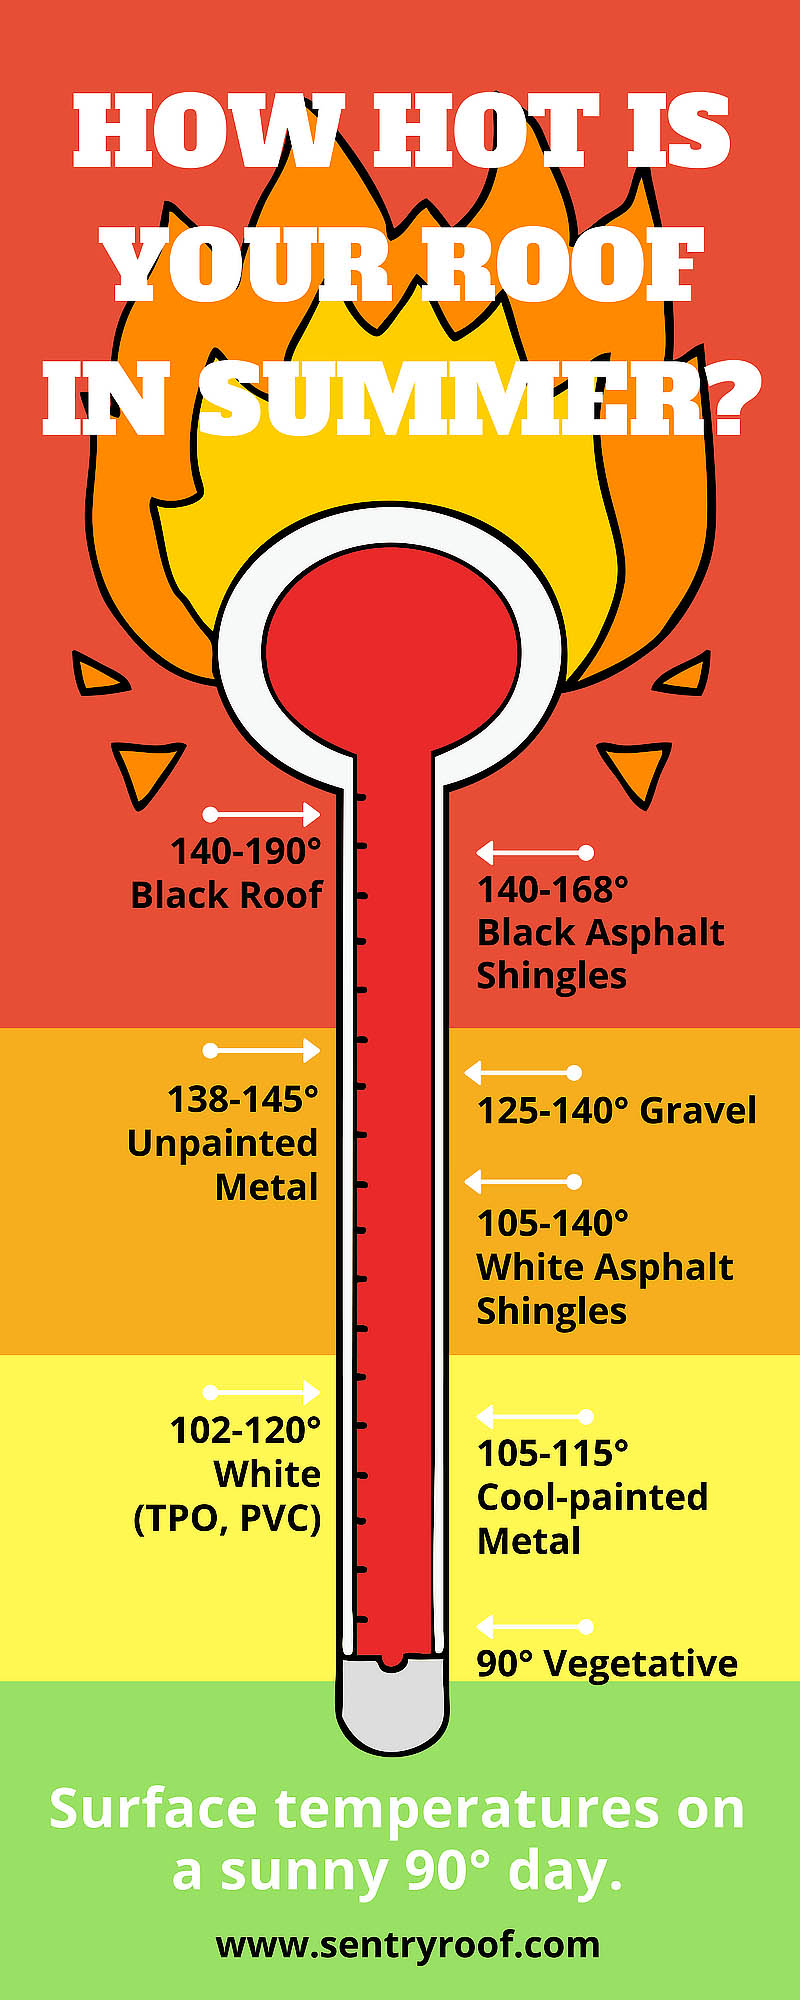 How Hot Does Your Commercial Roof Really Get In the Summer?